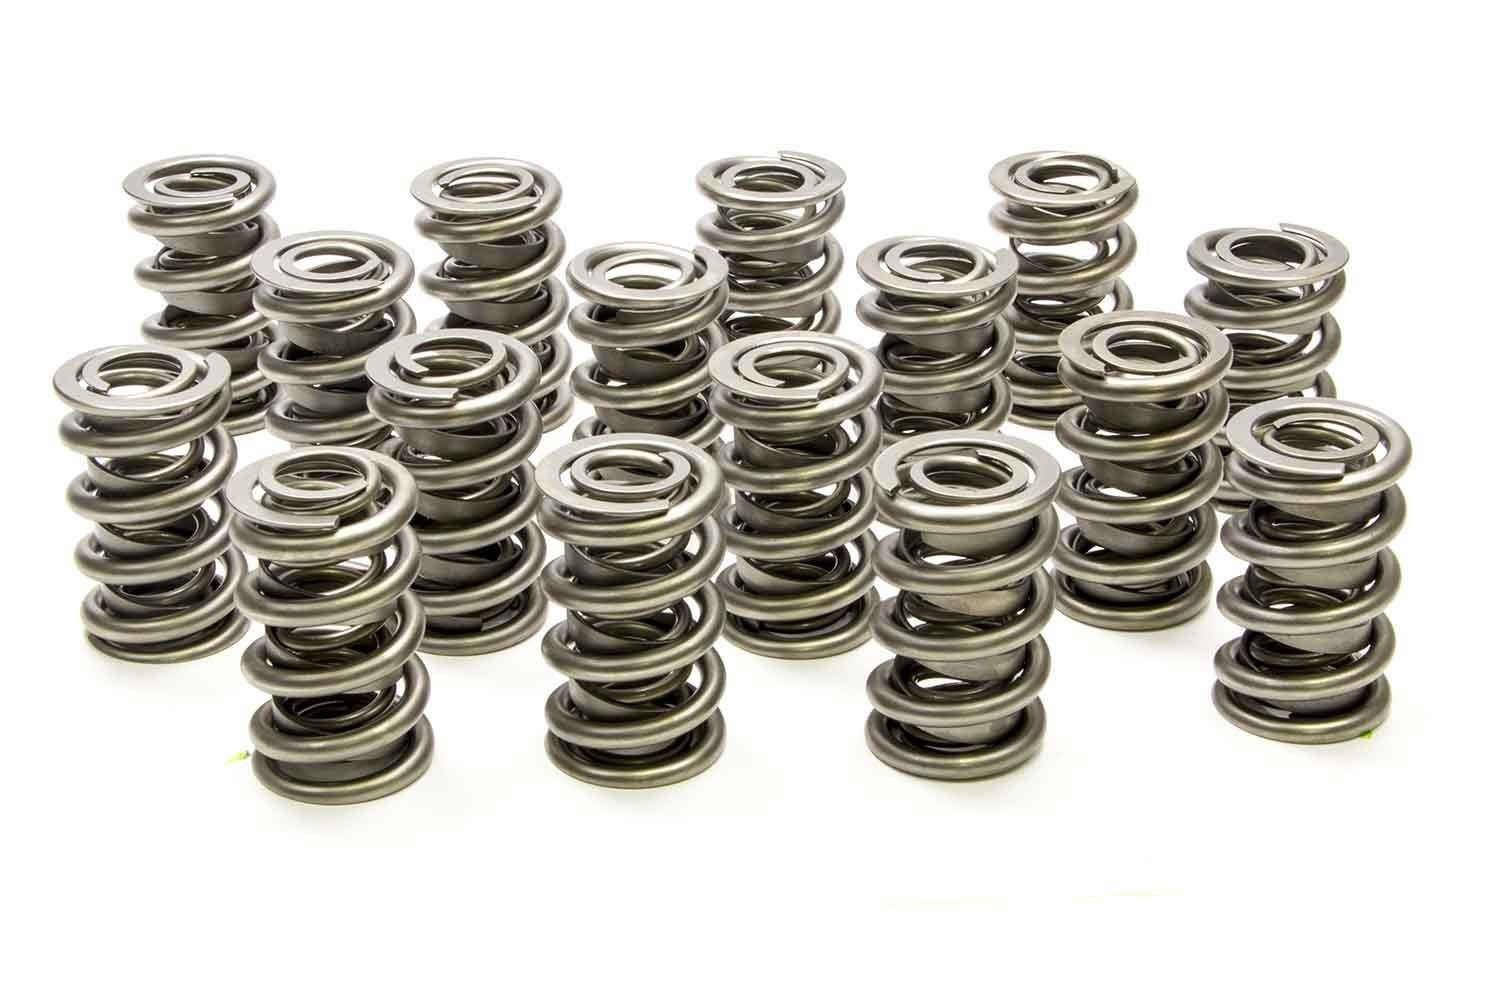 PAC Racing Springs PAC-1326 Valve Spring, 1300 Series, Dual Spring, 663 lb/in Spring Rate, 1.150 in Coil Bind, 1.550 in OD, Set of 16